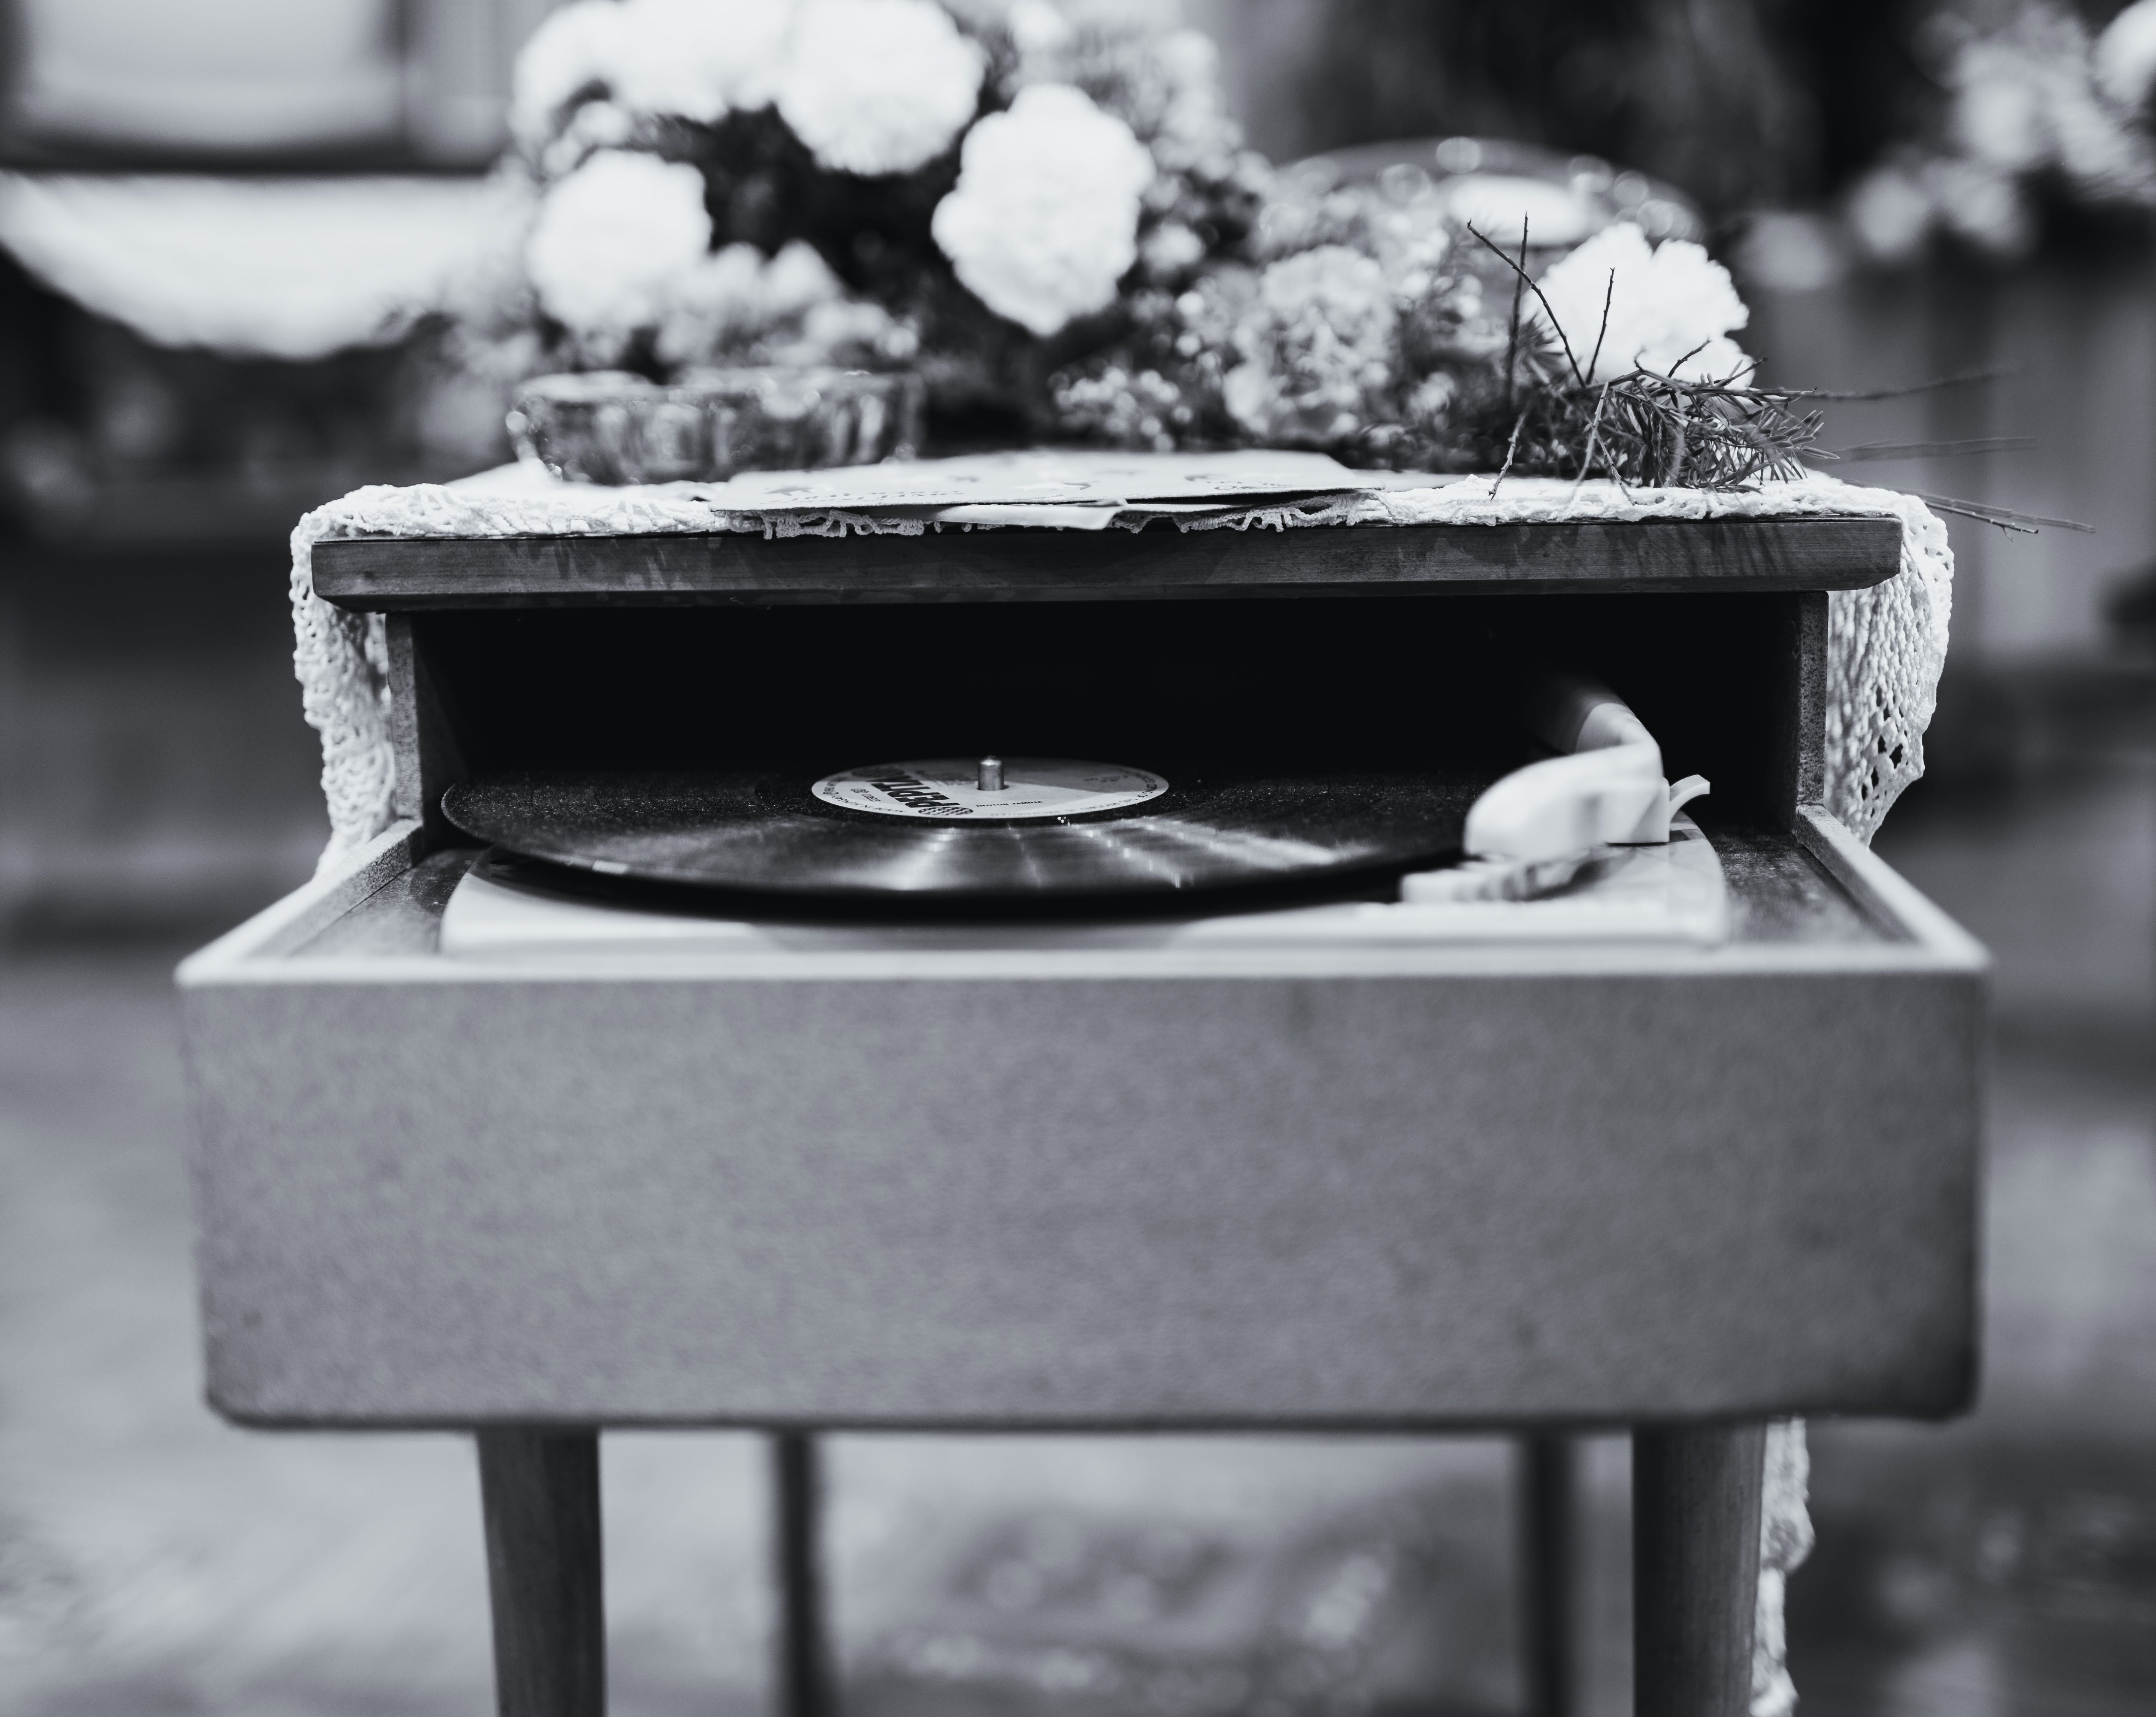 Grayscale Photo Of Vinyl Record Album Playing In Turntable